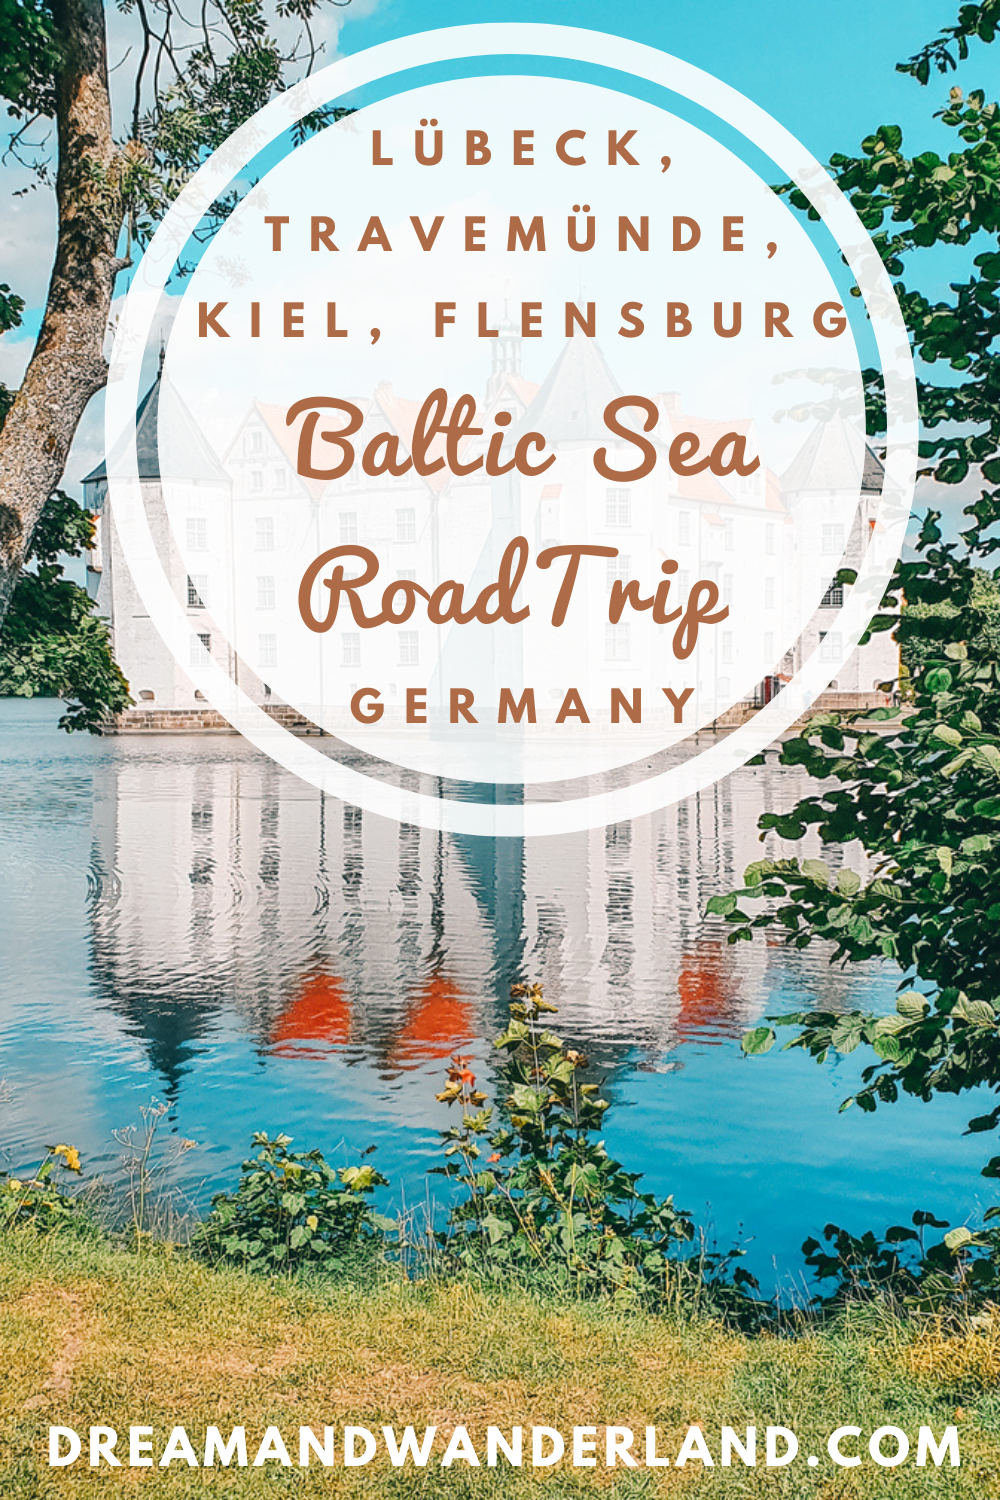 Travel Baltic Sea Coast in Schleswig-Holstein, Germany, and find stunning places and awesome things to do! Have a blast on your German vacation getaway! #thingstodo #germany #holiday #roadtrip